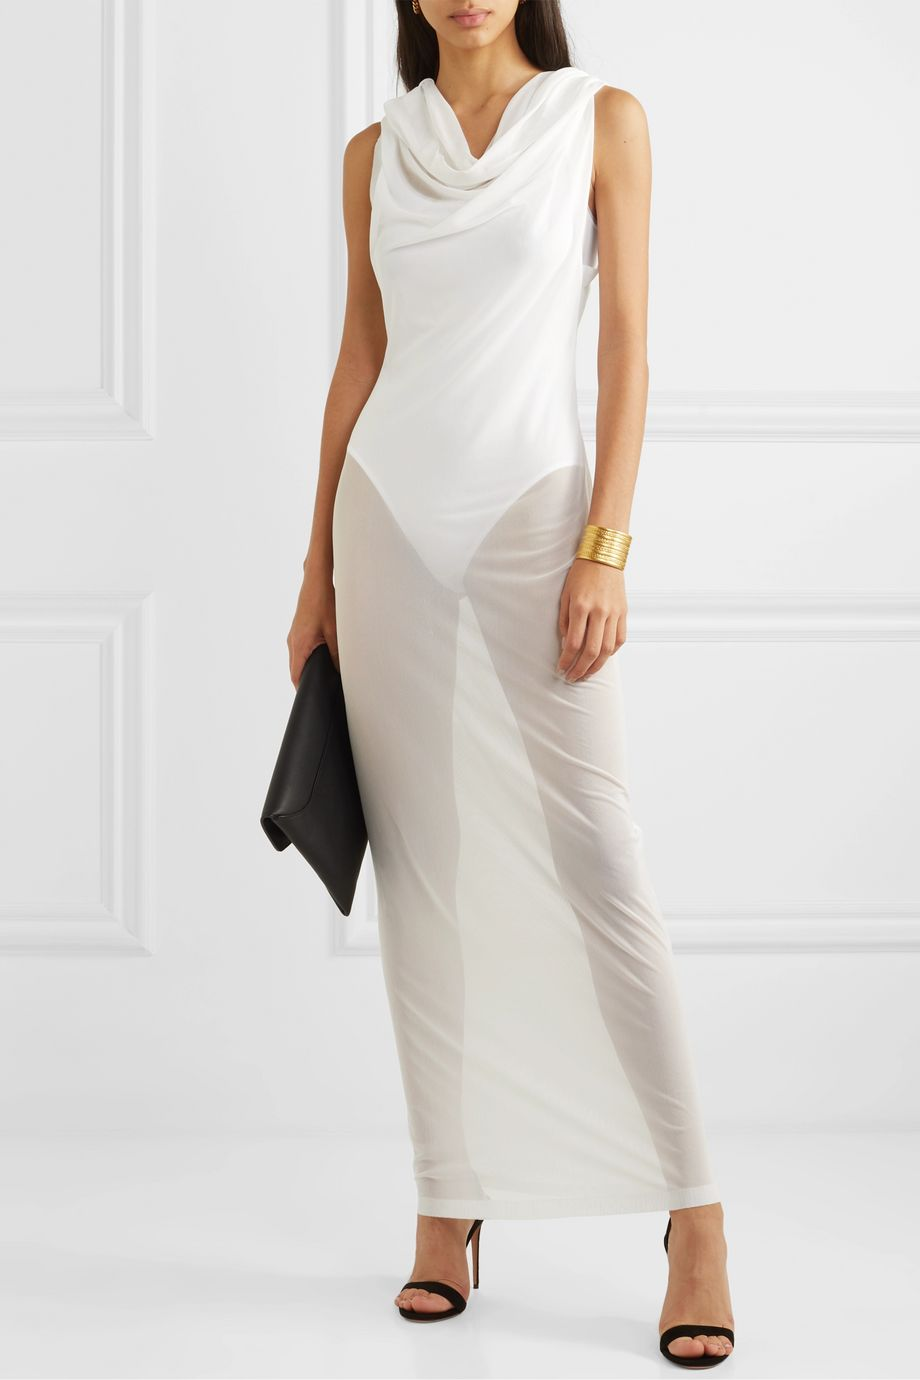 Norma Kamali Neeta draped gauze maxi dress